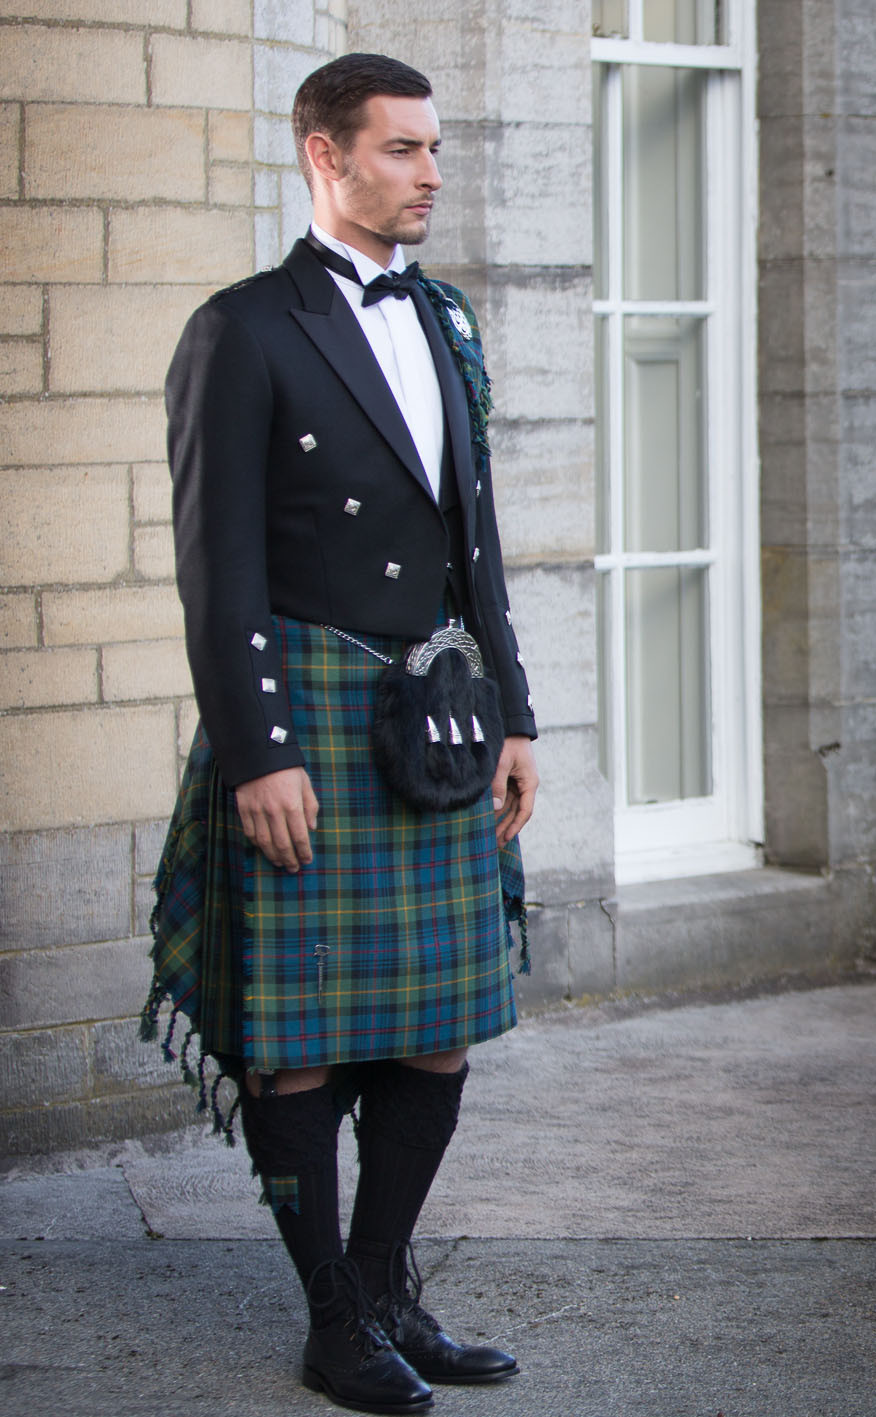 luxury-prince-charlie-kilt-outfit